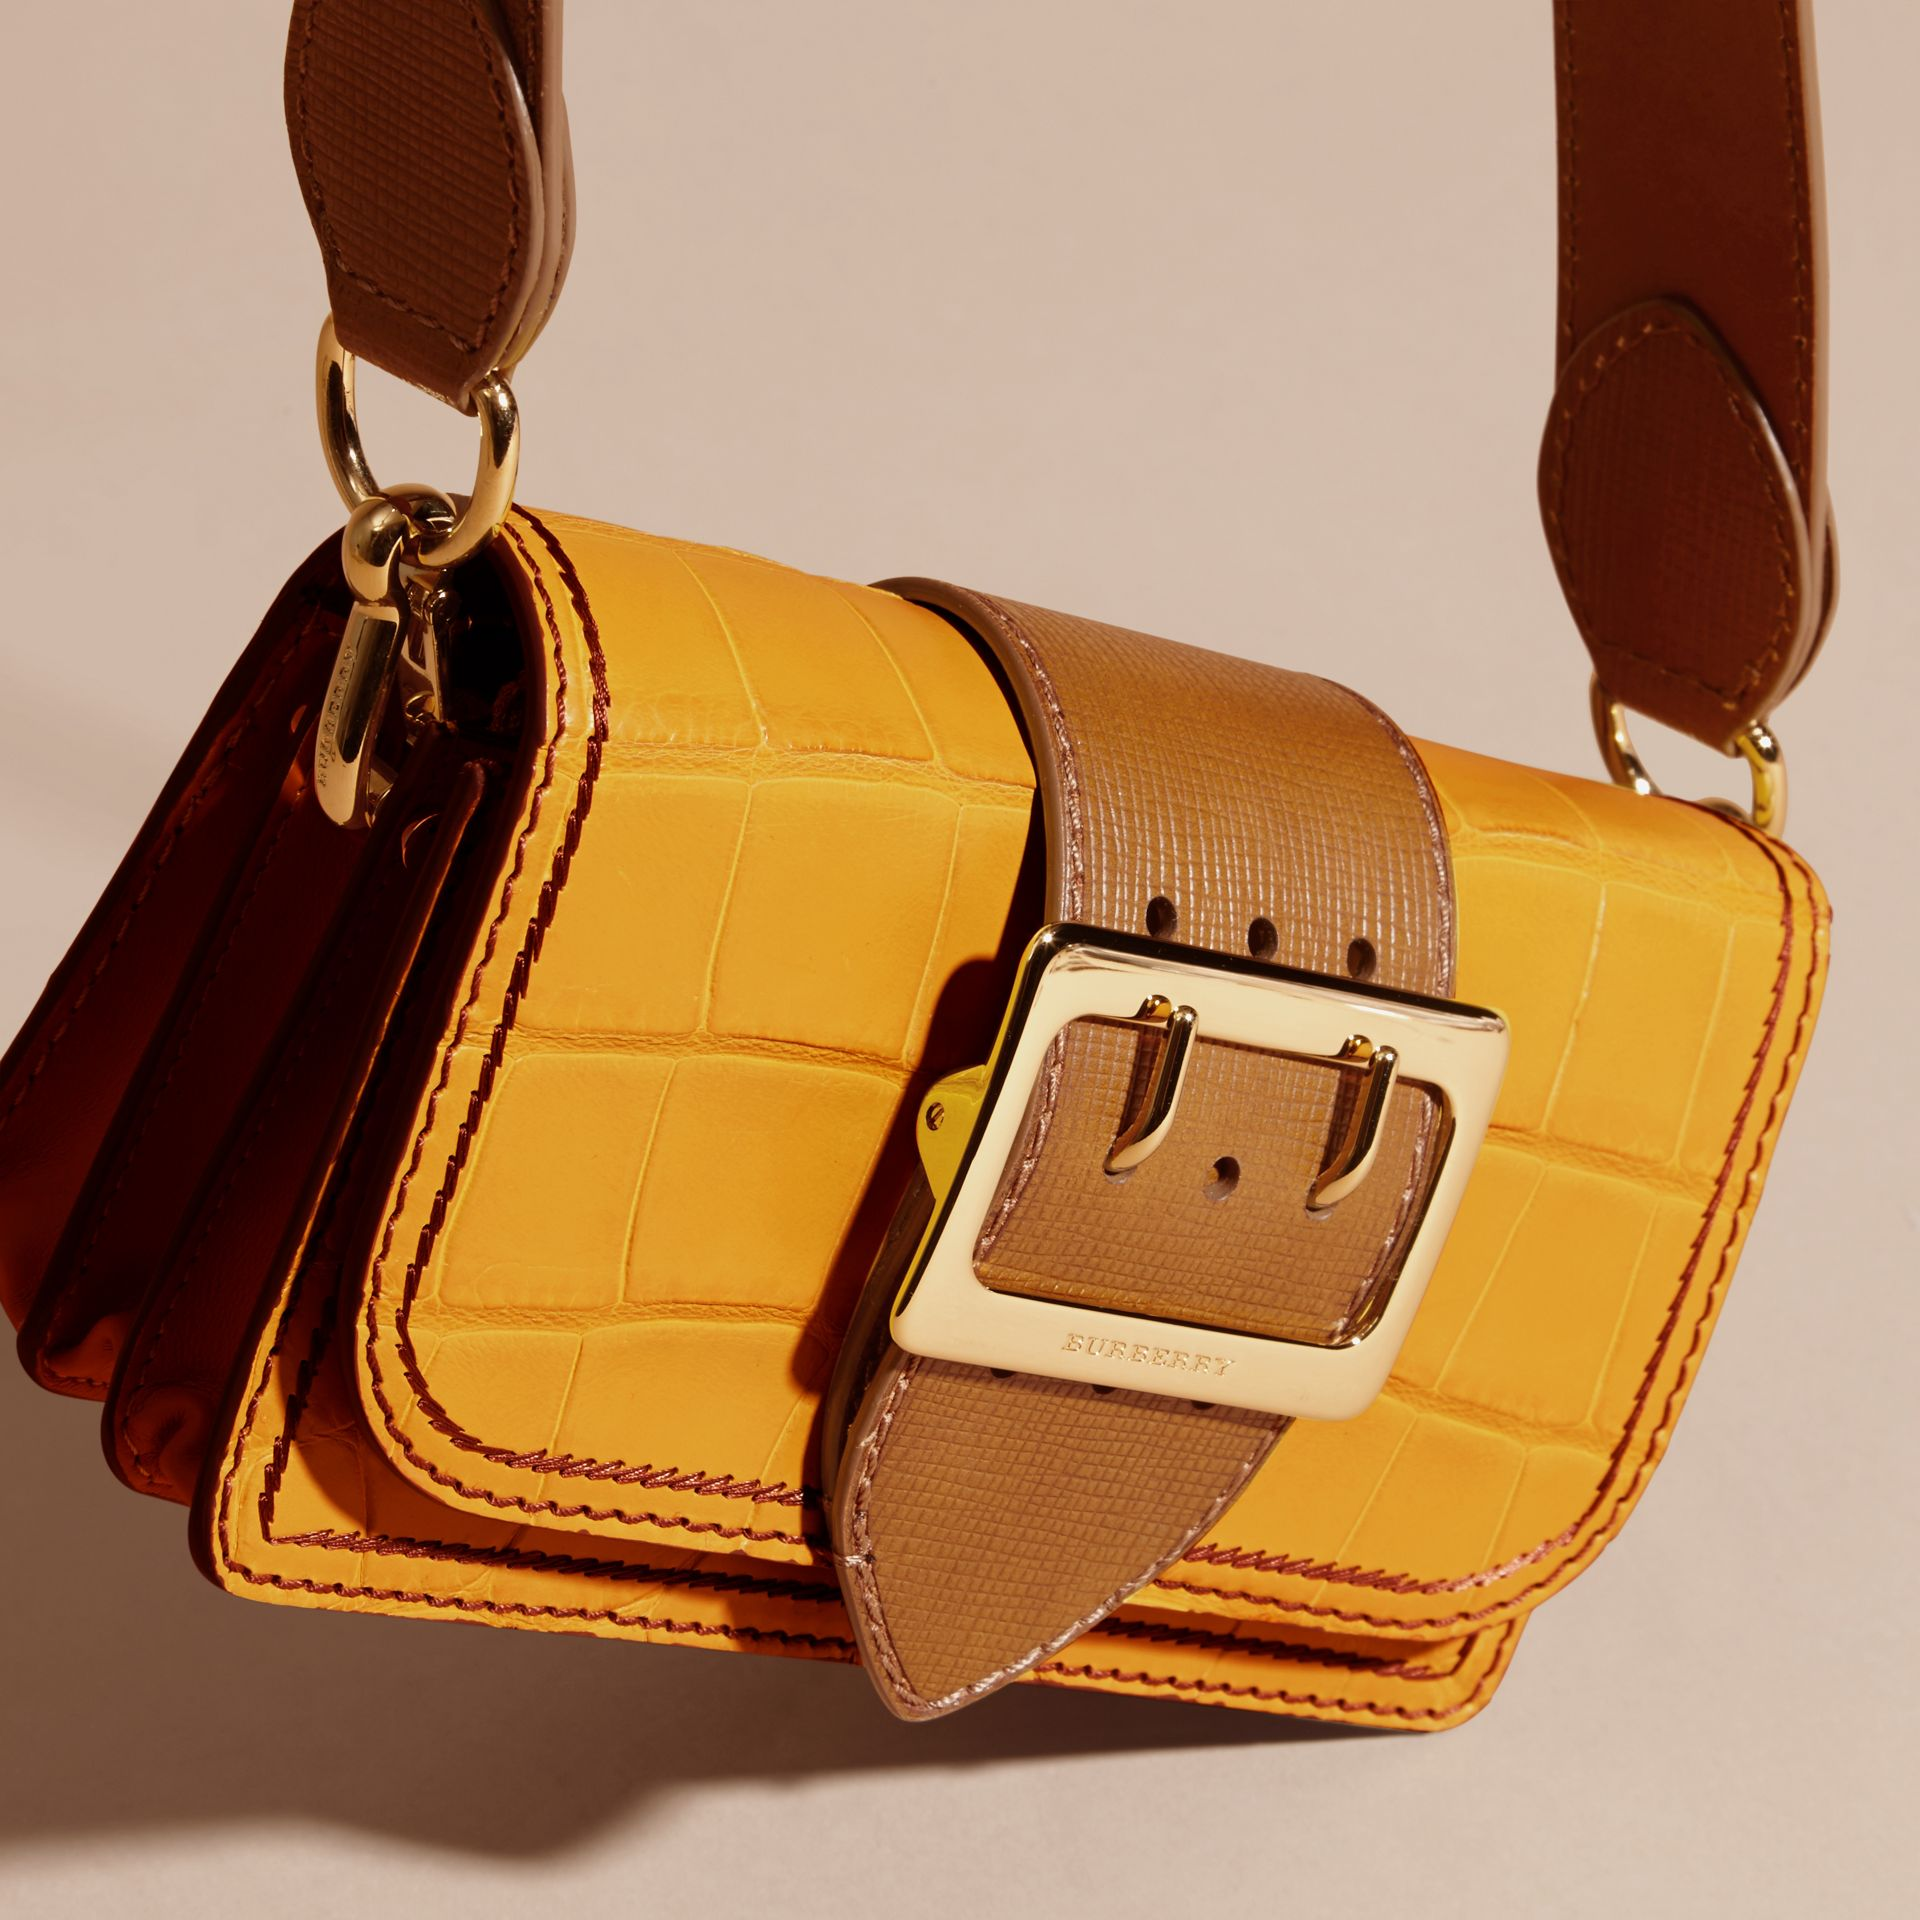 The Small Buckle Bag in Alligator and Leather in Citrus Yellow / Tan - Women | Burberry Canada - gallery image 7